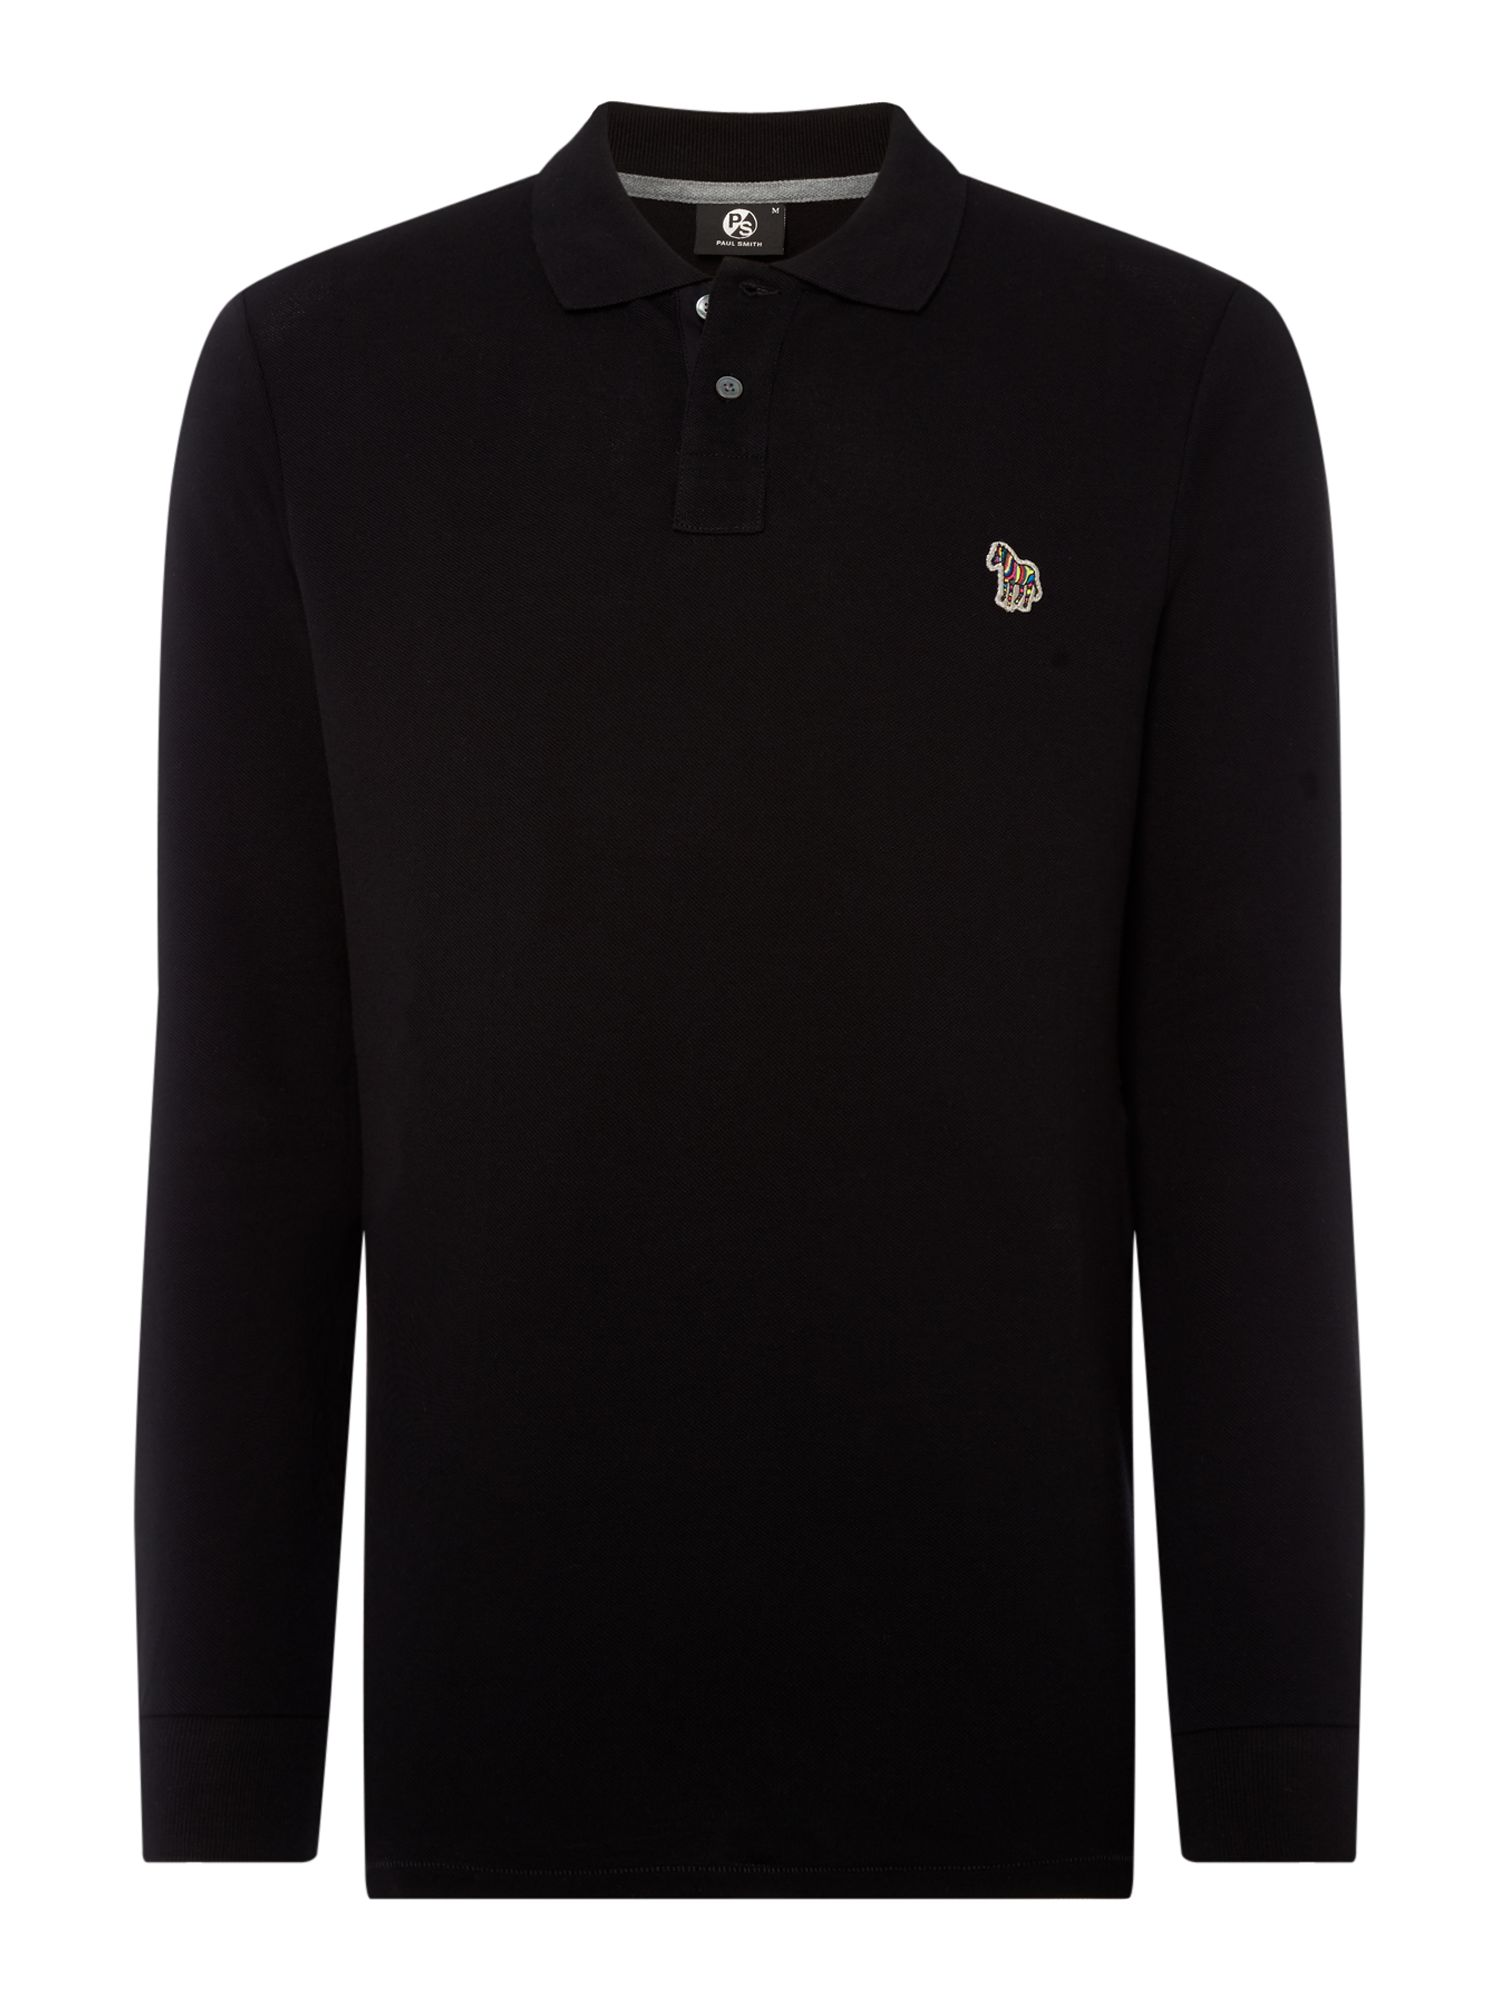 Men's PS By Paul Smith Regular fit zebra logo long-sleeve polo shirt, Black